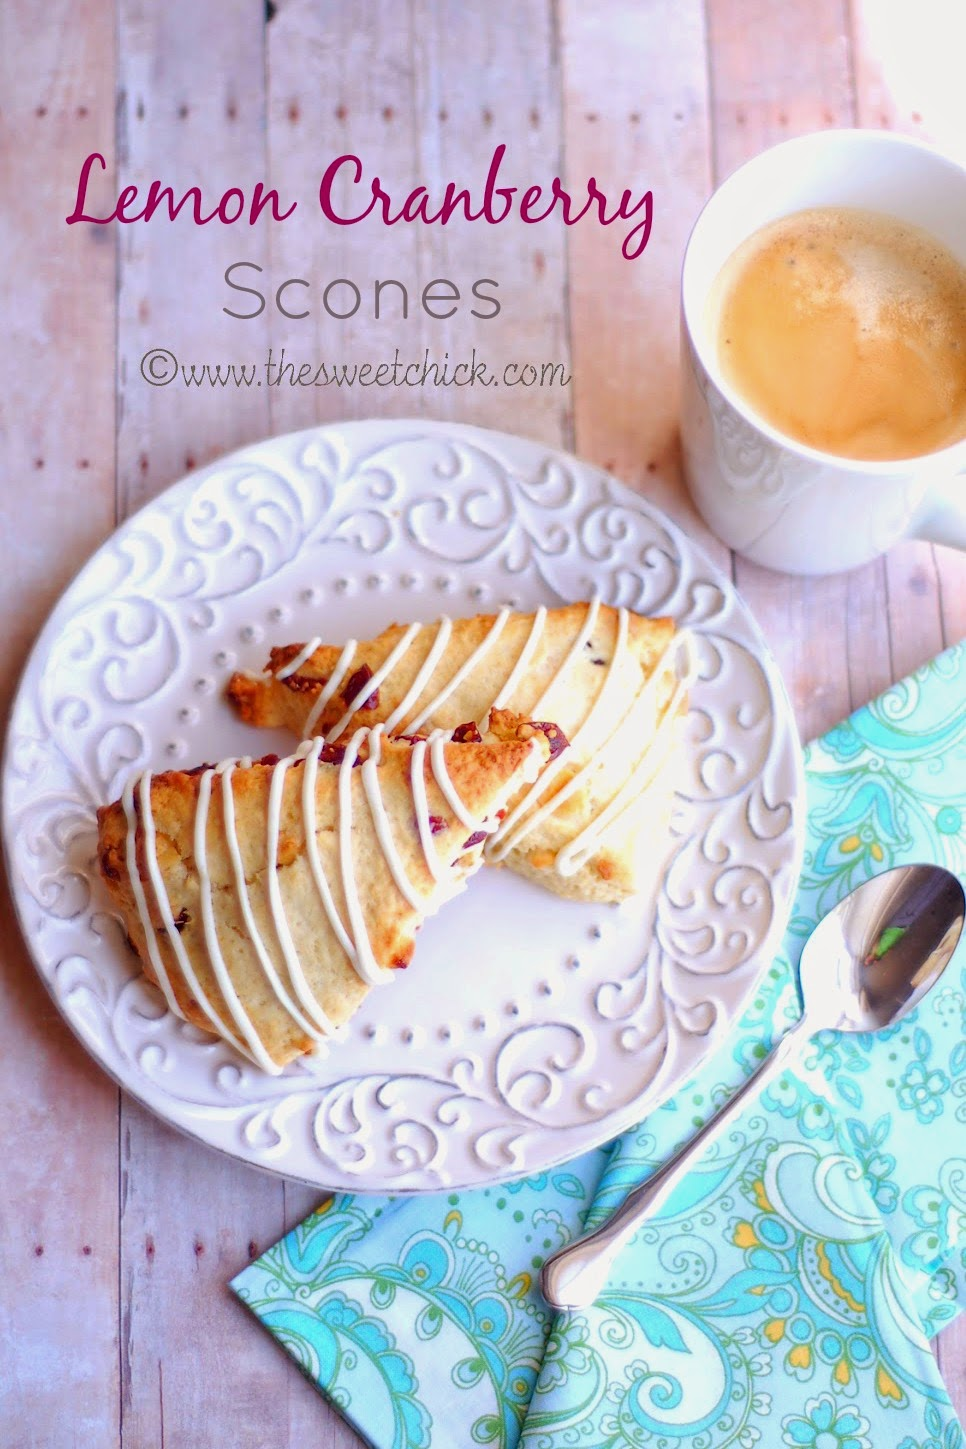 Lemon Cranberry Scones by The Sweet Chick